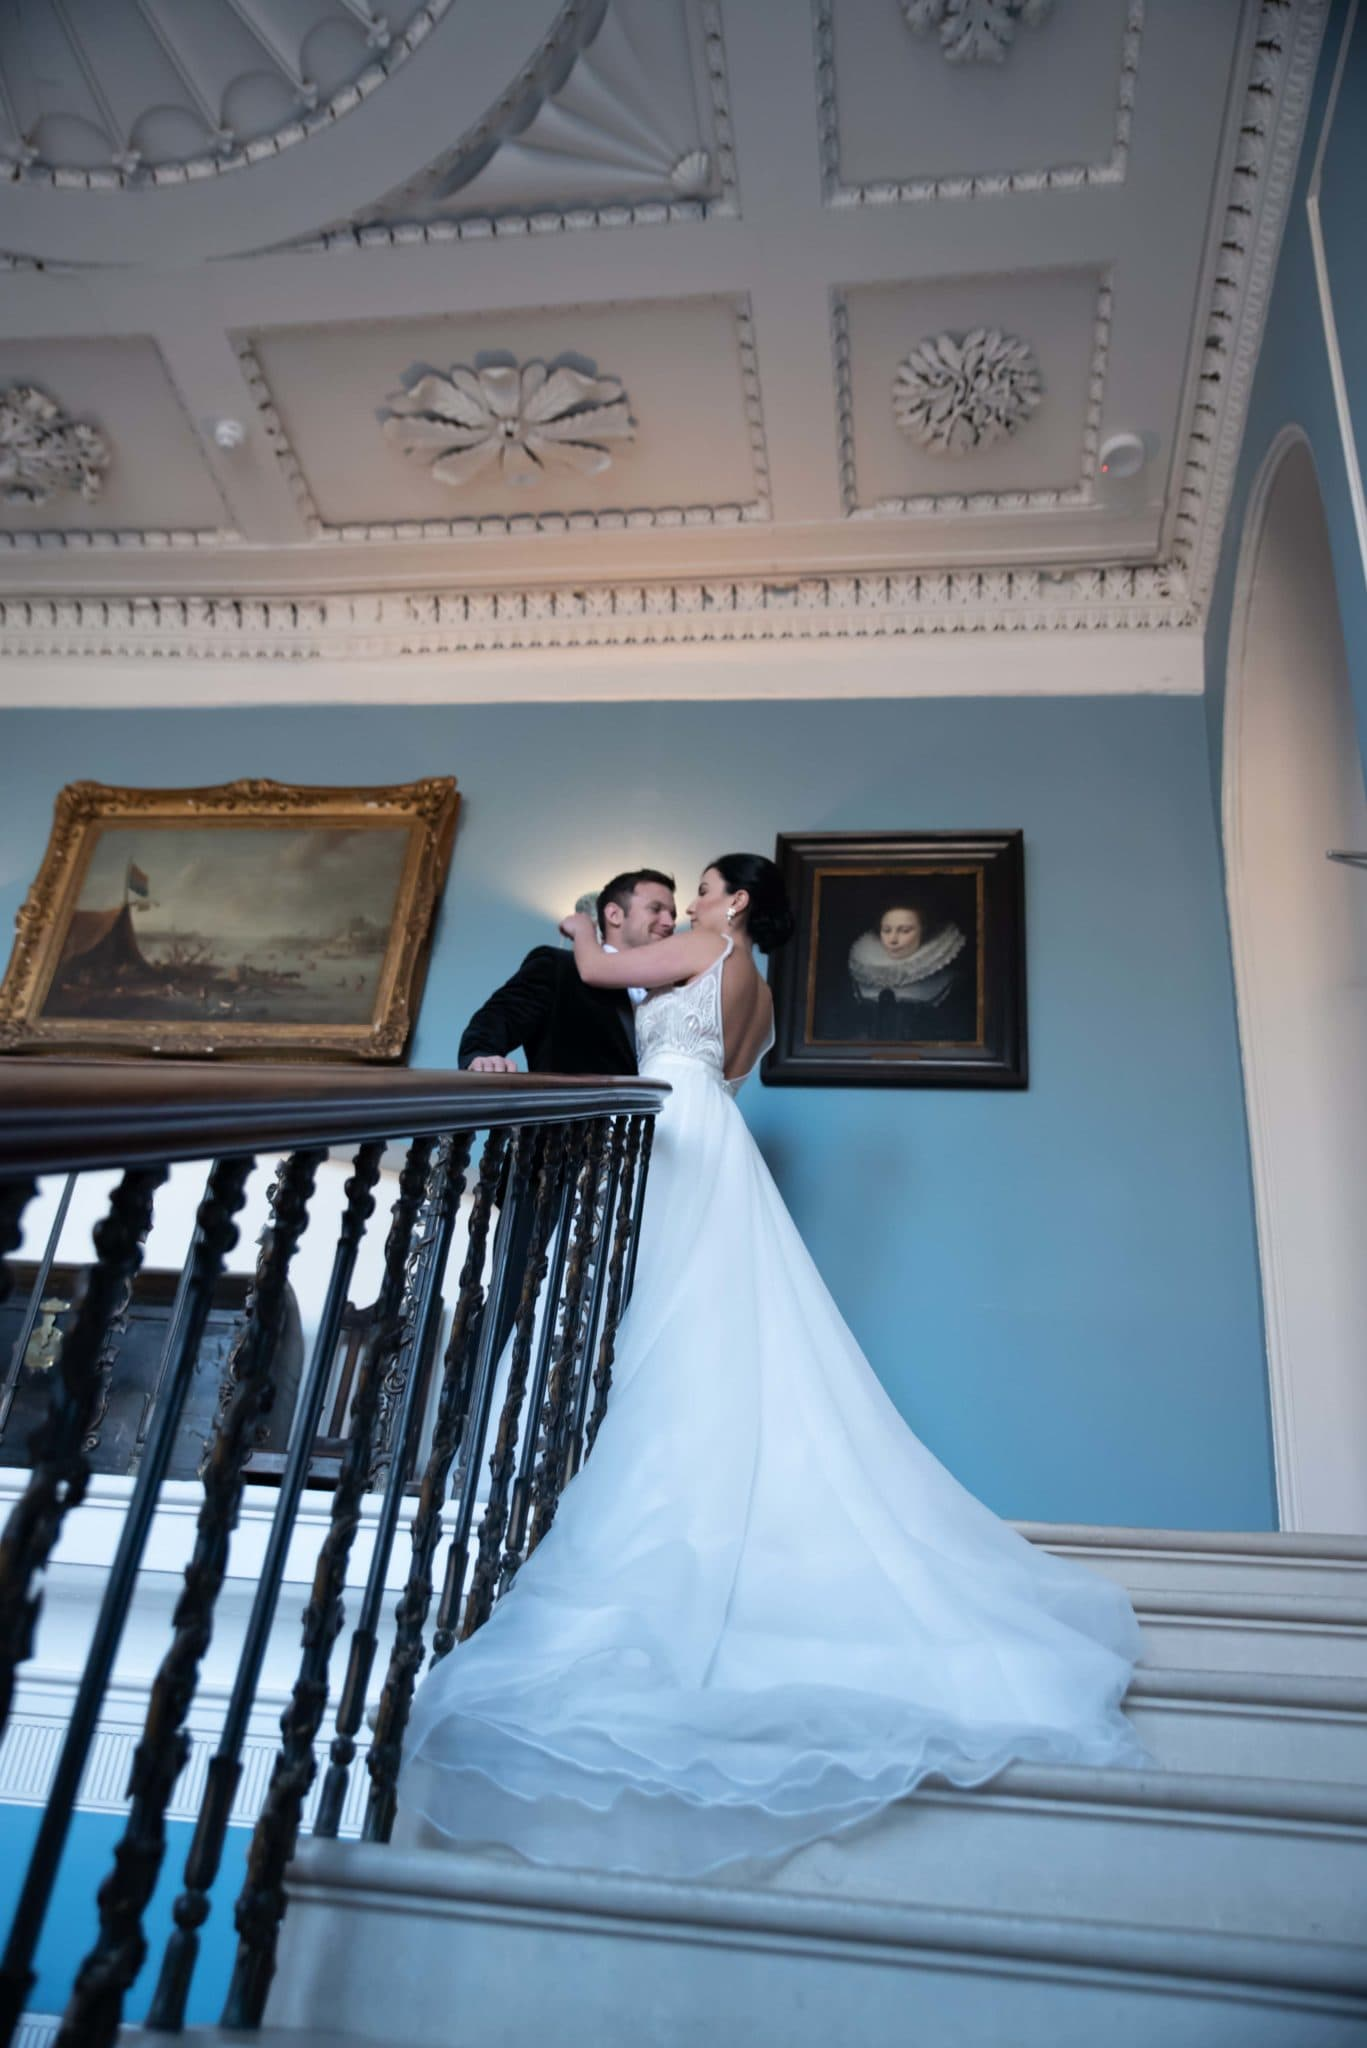 Wedding, bride, and groom, harrow wedding photographer